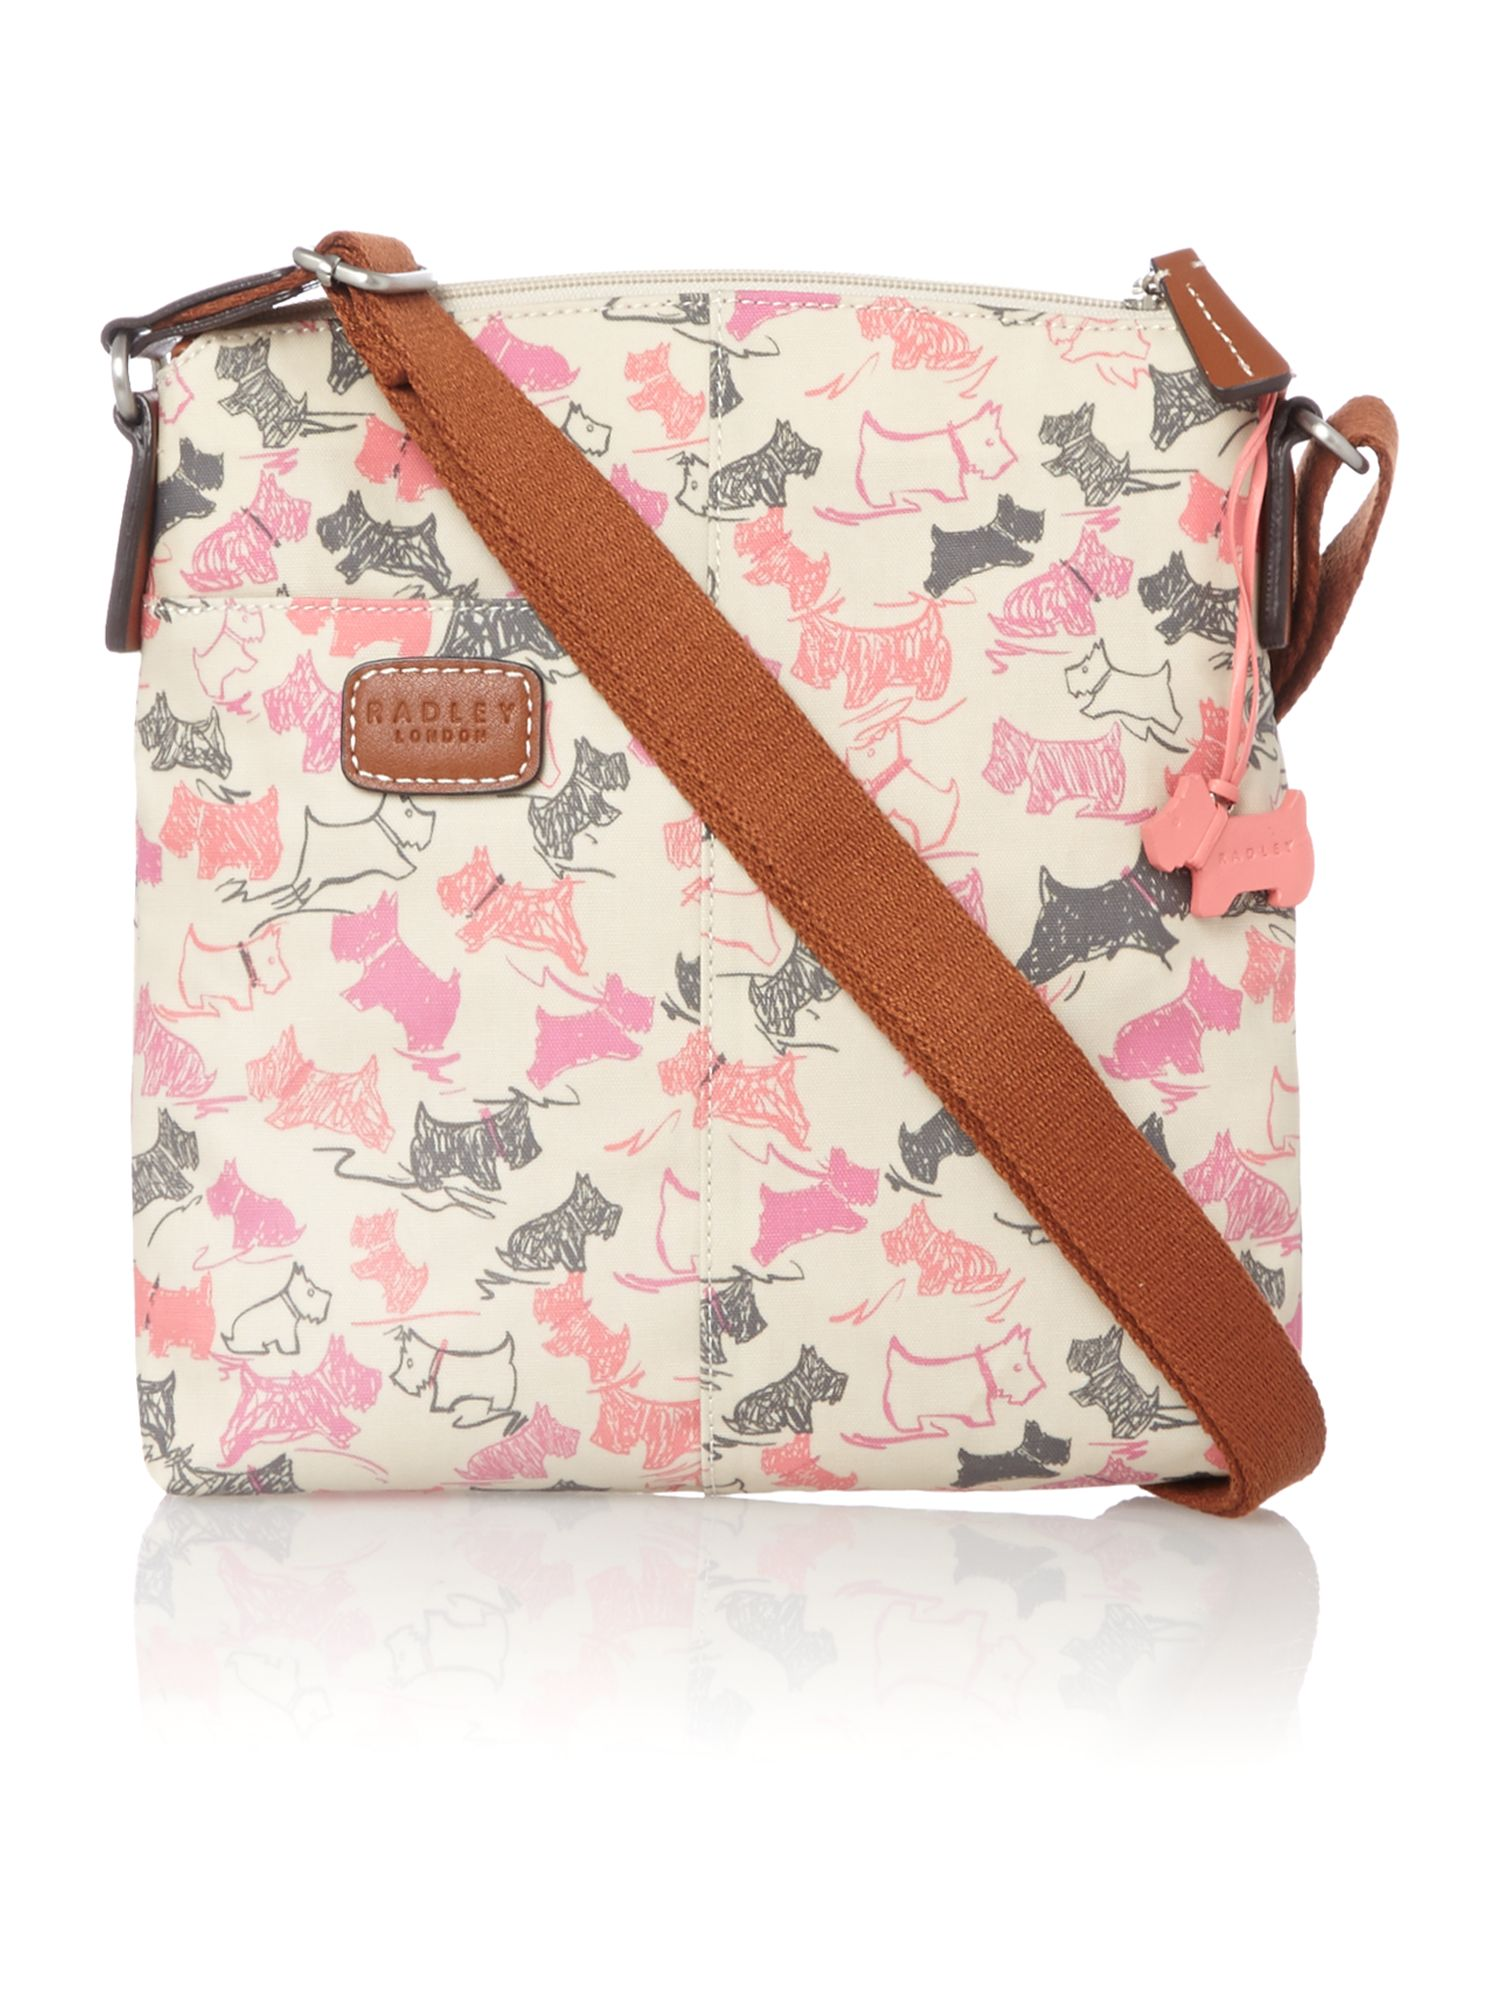 Doodle dog medium ziptop xbody ivory handbag